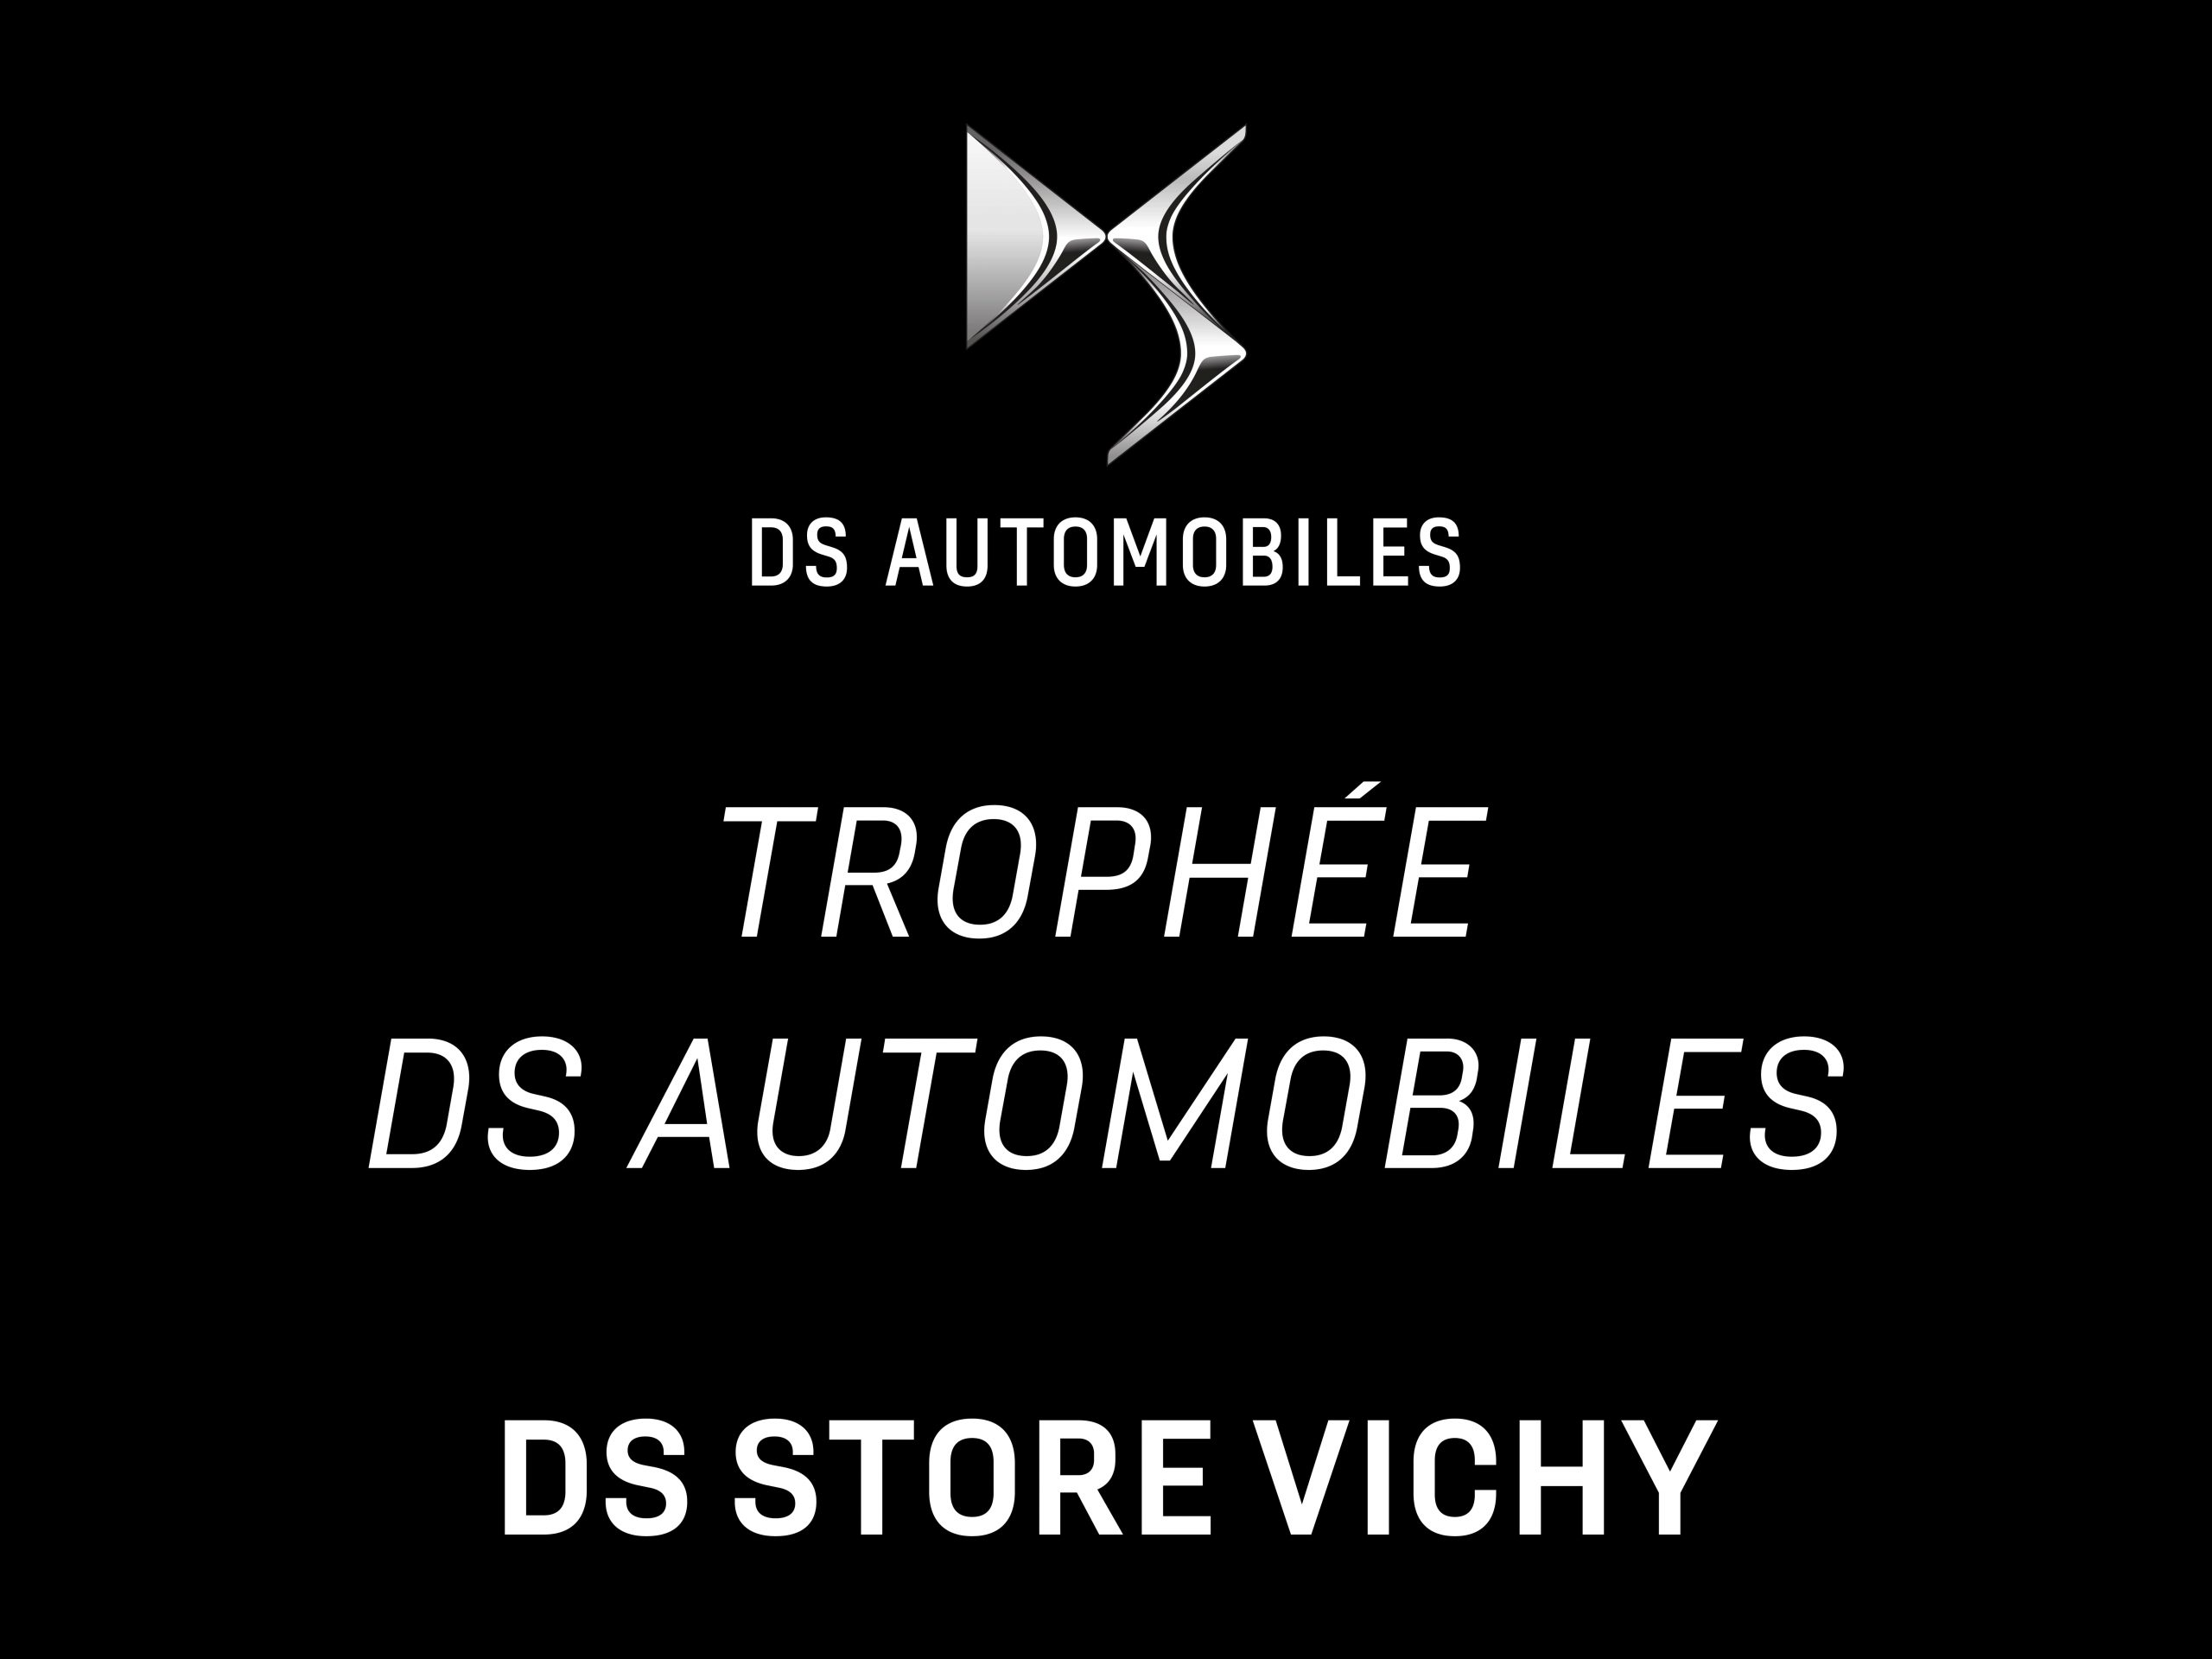 DS STORE VICHY